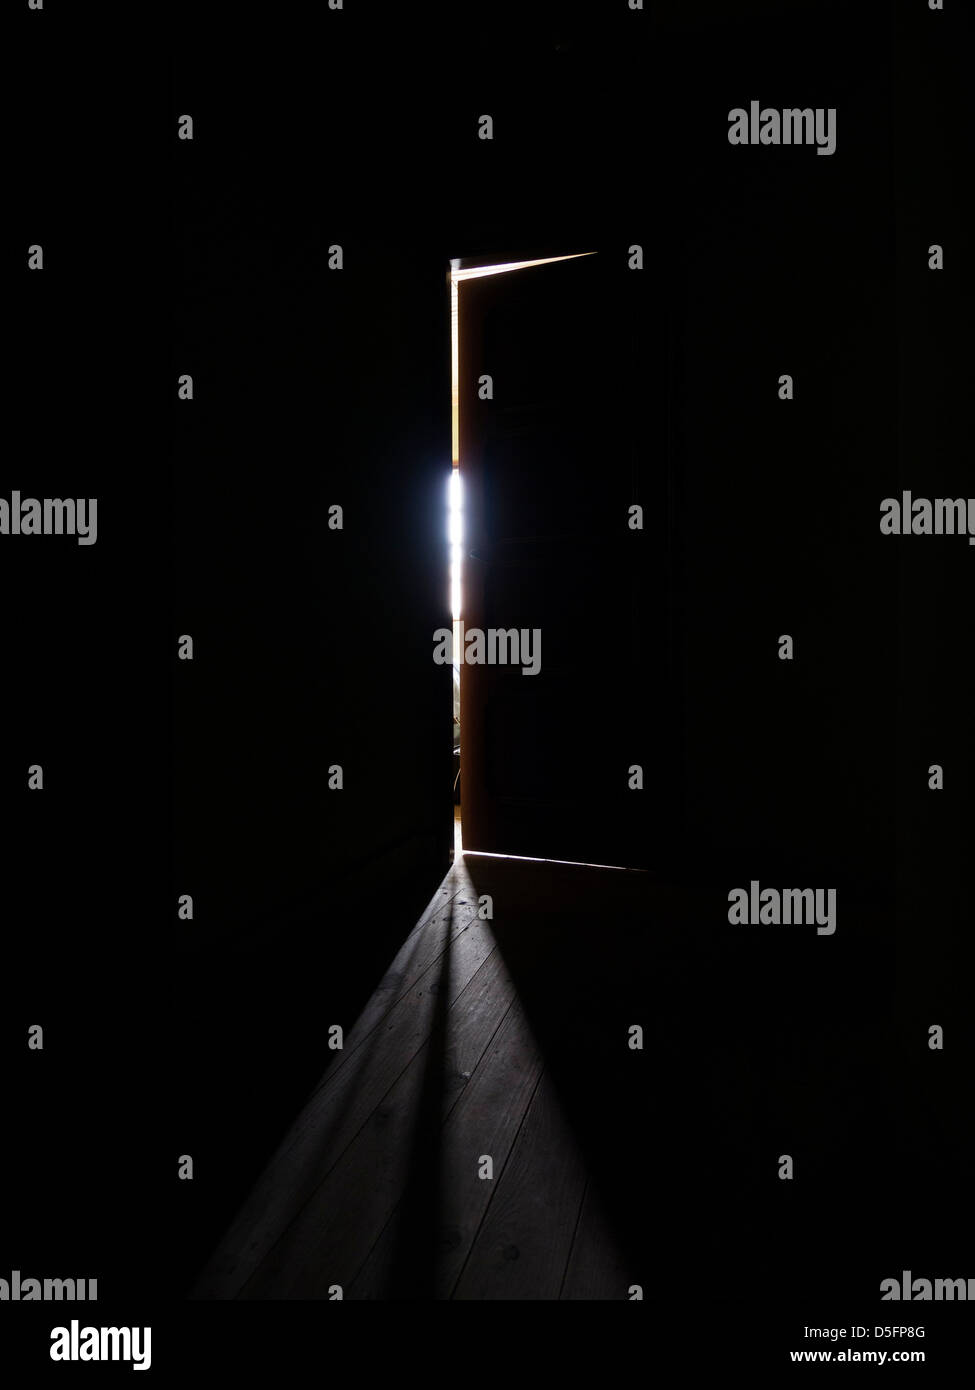 Door ajar at the end of a dark corridor letting some light trough in a menacing and scary way - Stock Image